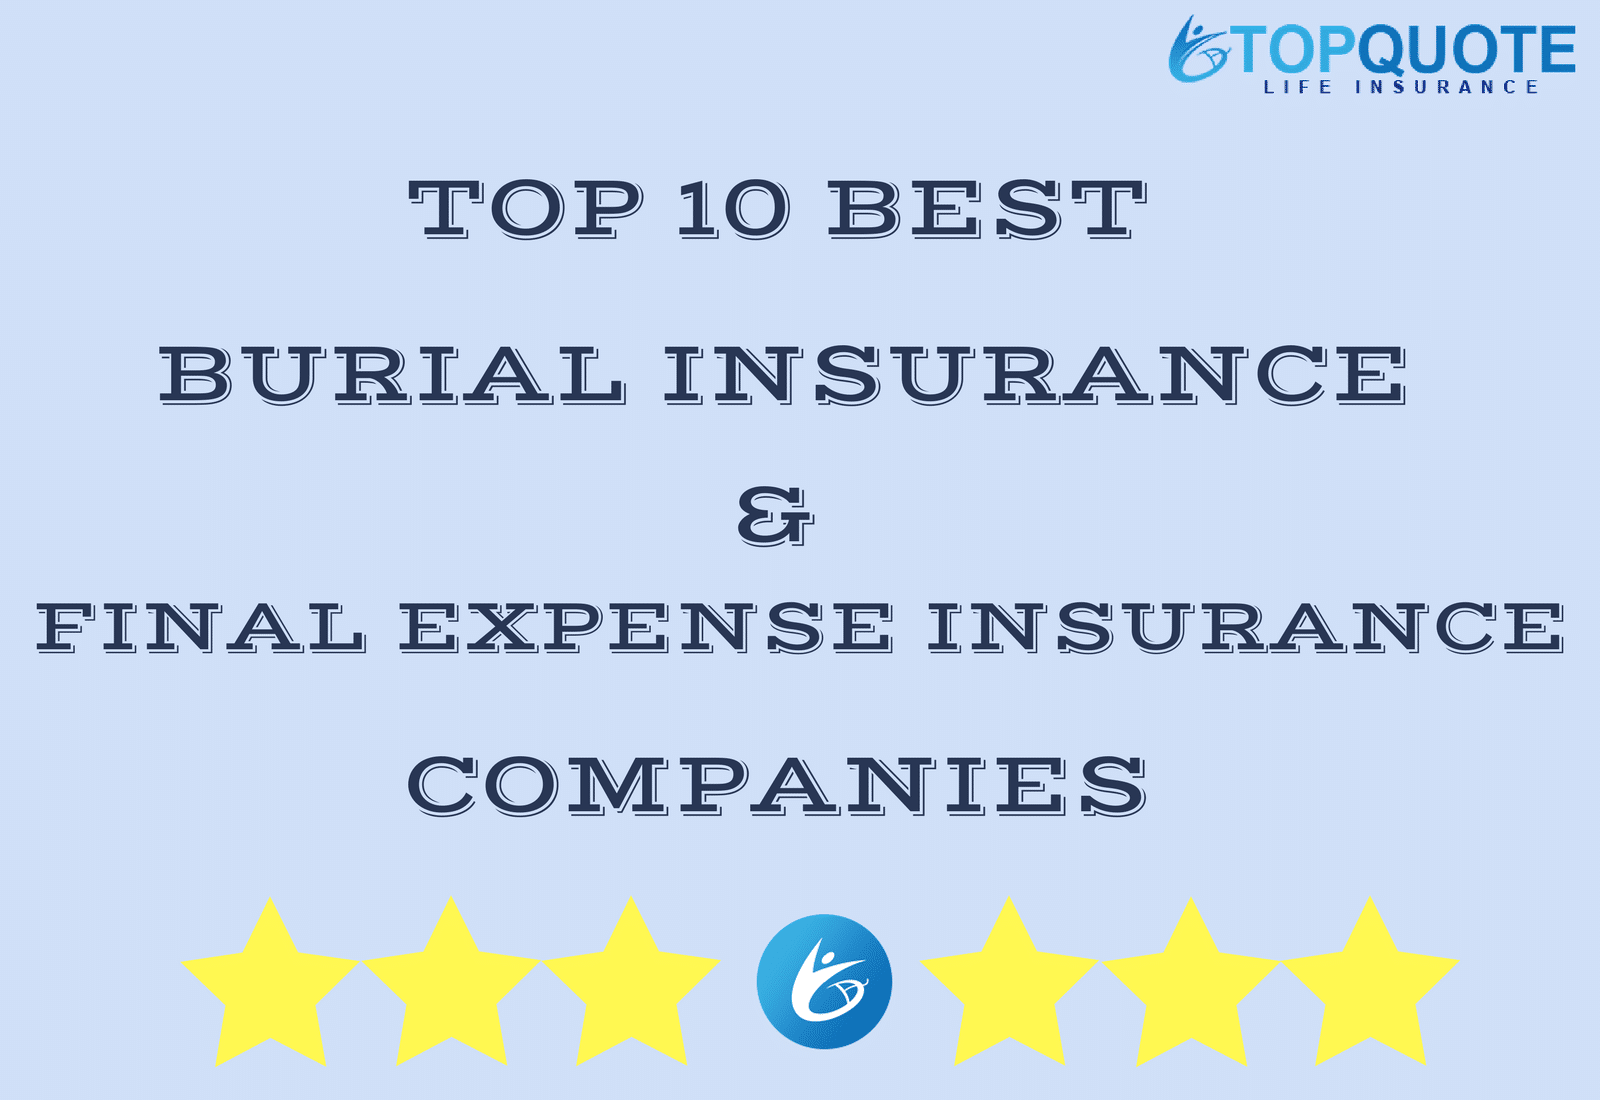 Final Expense Life Insurance Quotes Captivating 2018 Top 10 Best Burial Insurance & Final Expense Insurance Companies